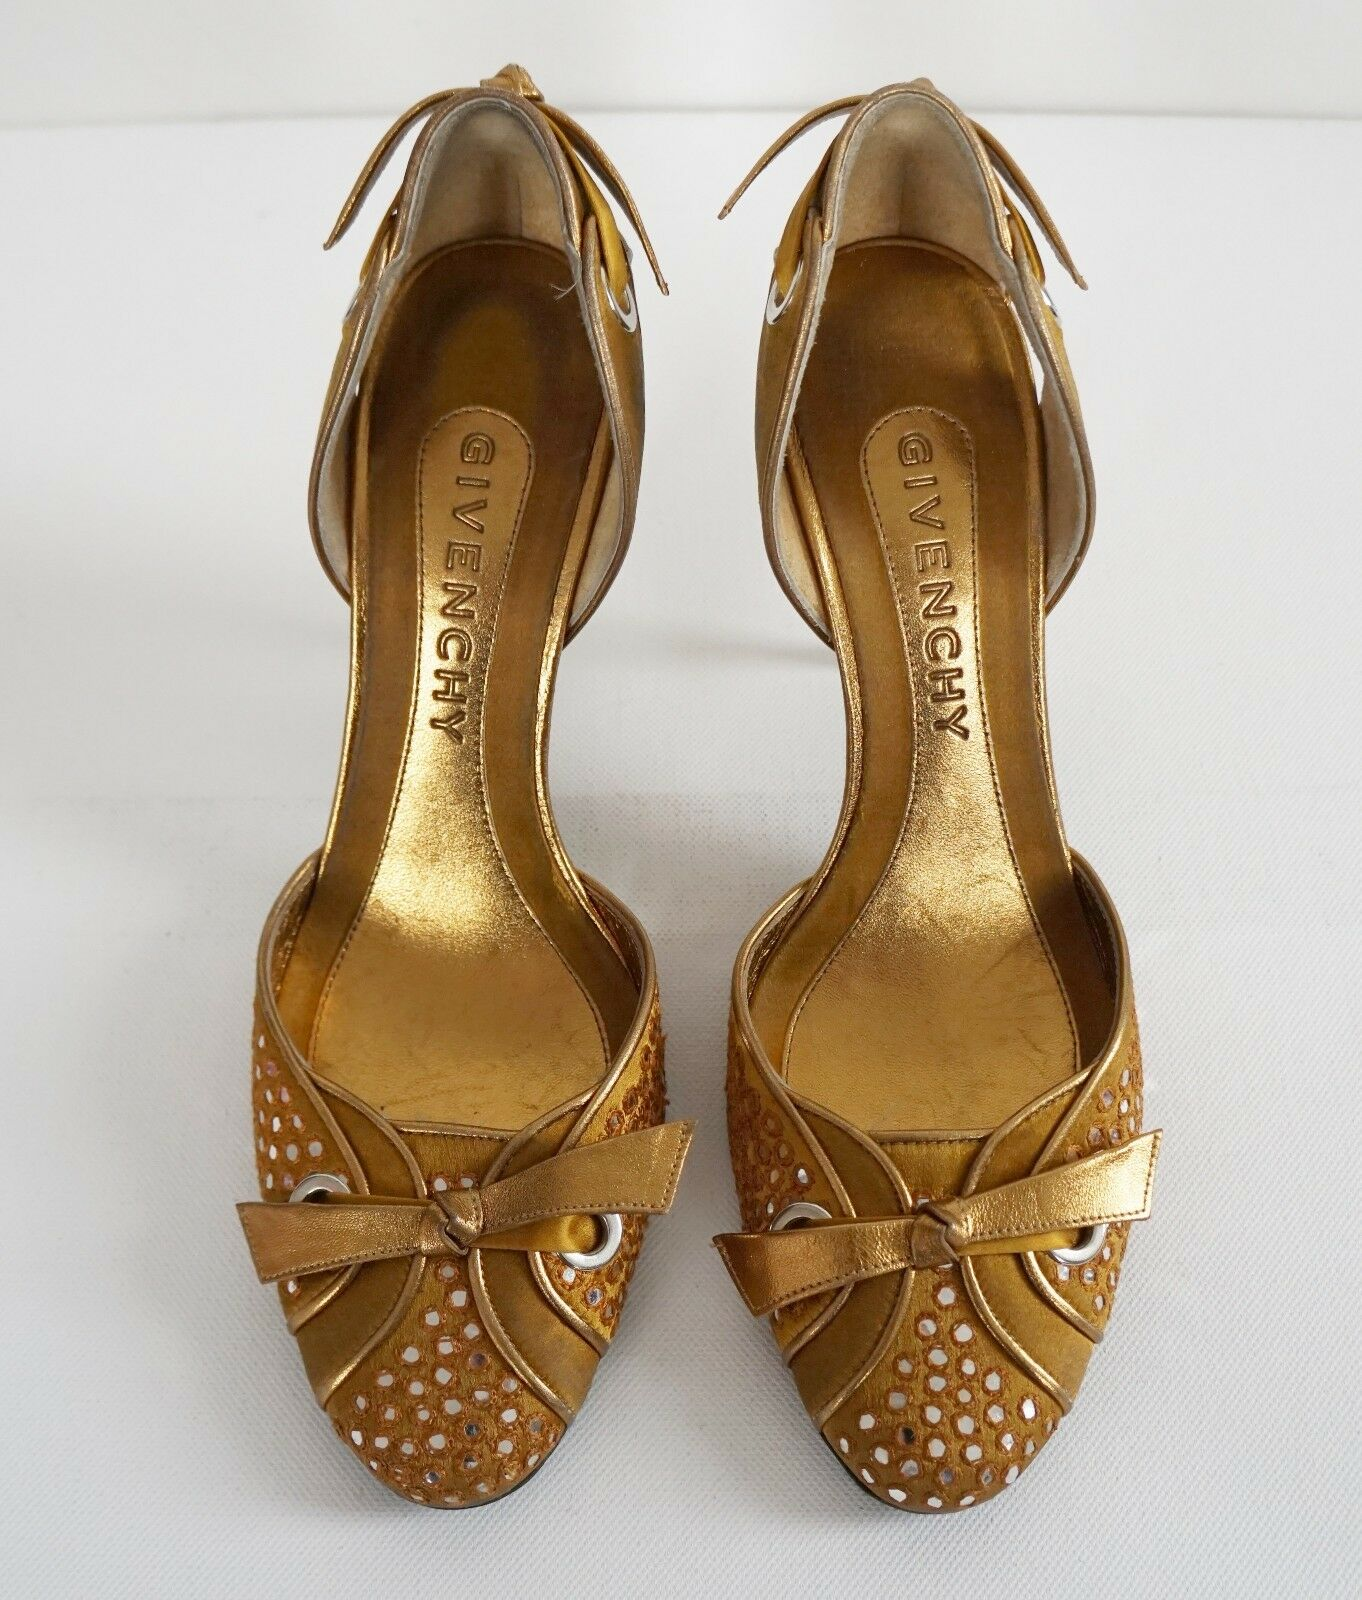 579 Authentic GIVENCHY Gold Satin Leather Heels Pumps EU-38 US-8